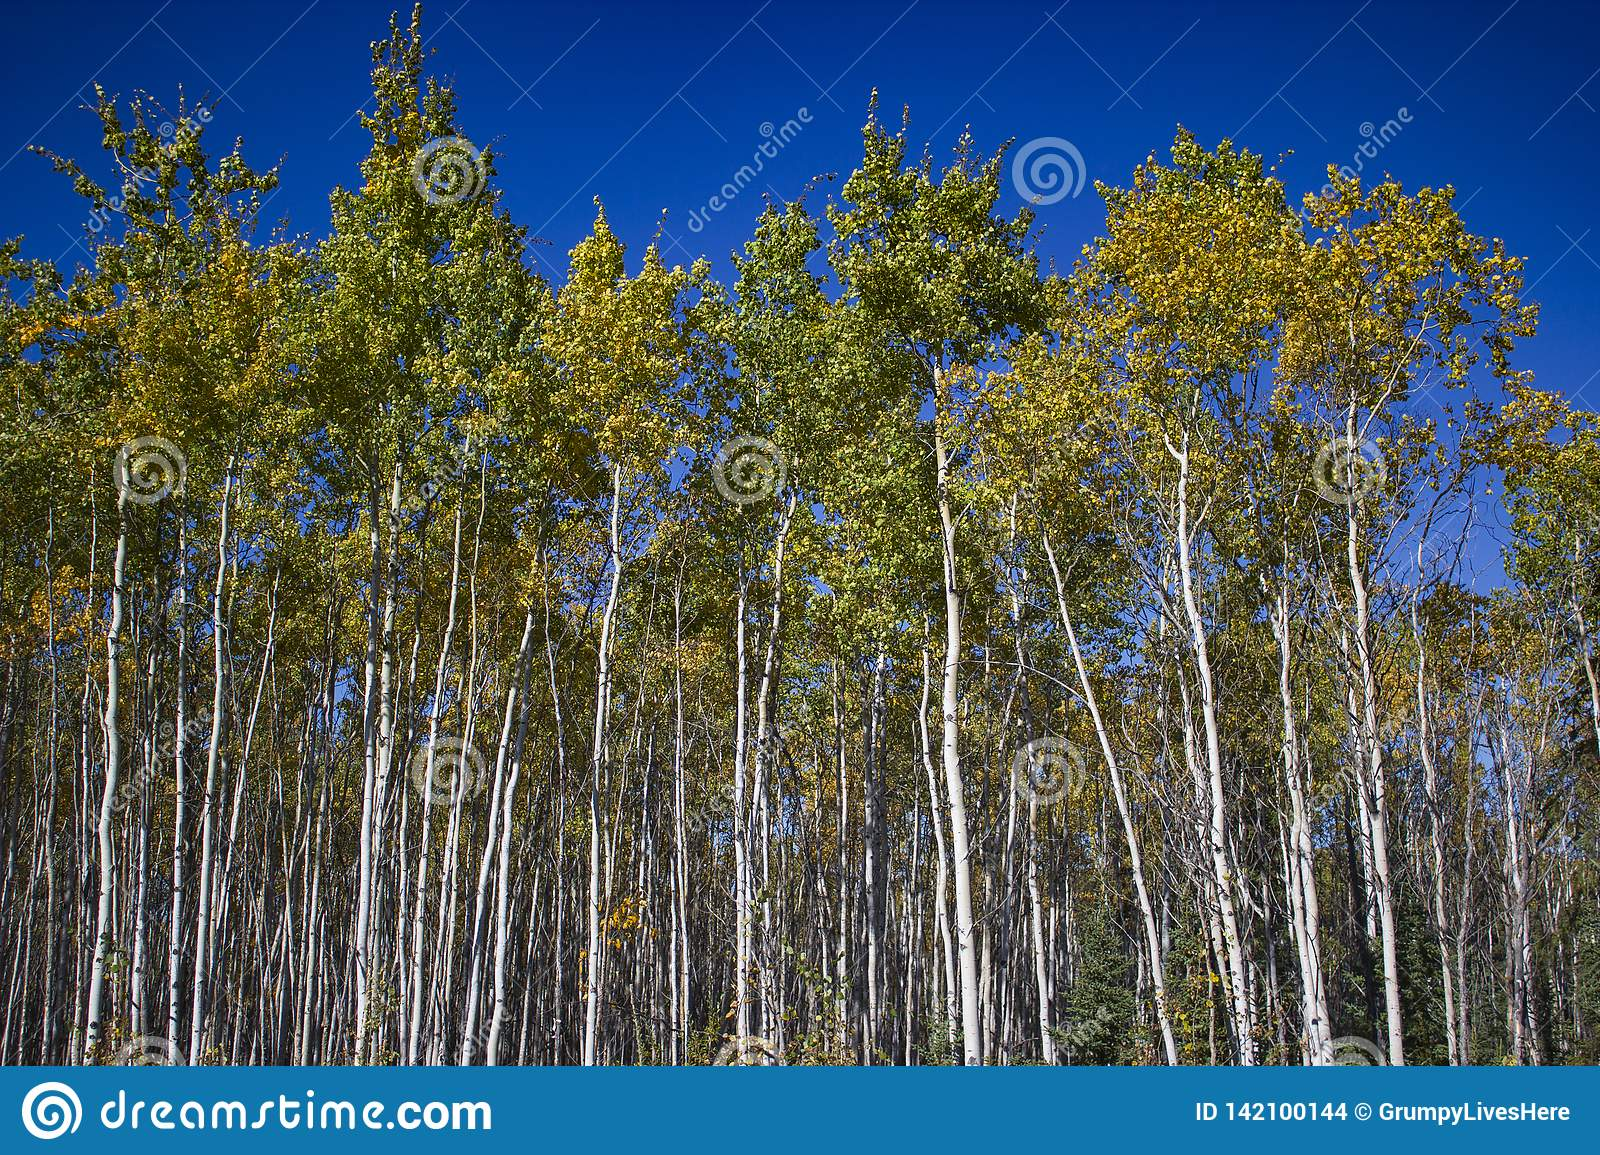 Tall White Birches with colorful leaves & blue sky, Yukon